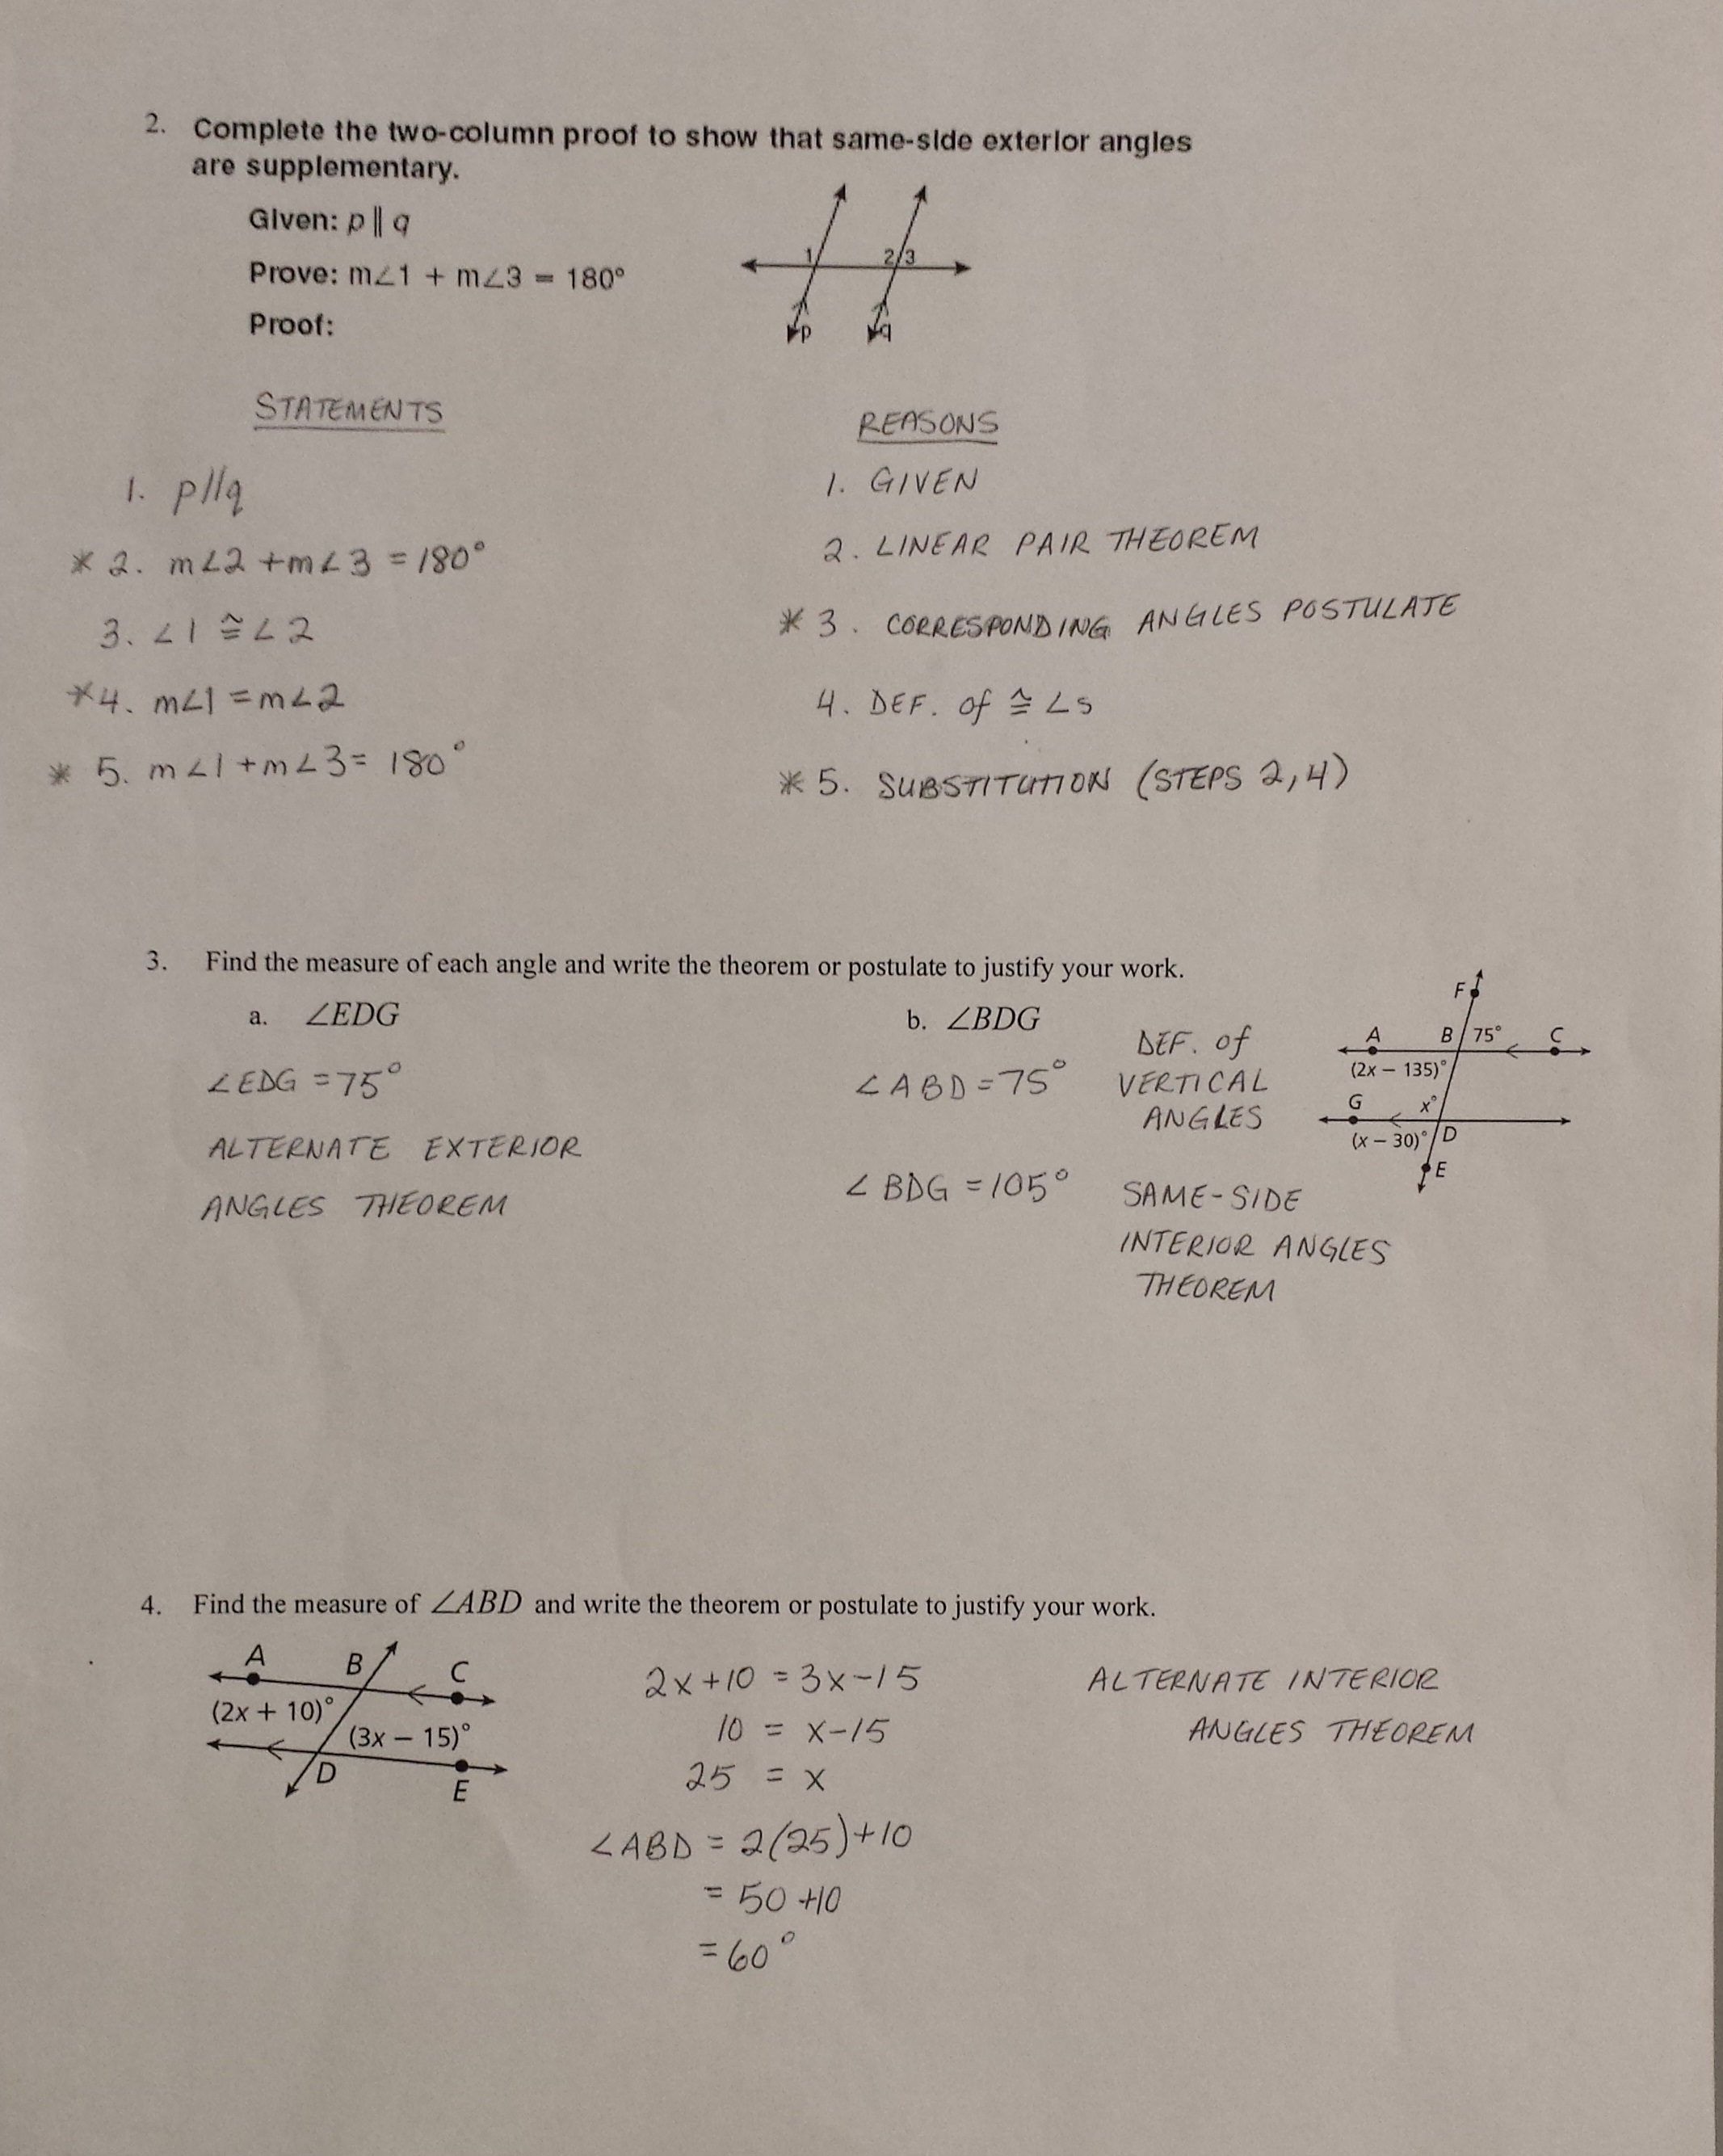 Worksheet Section 3 2 Angles And Parallel Lines Answers